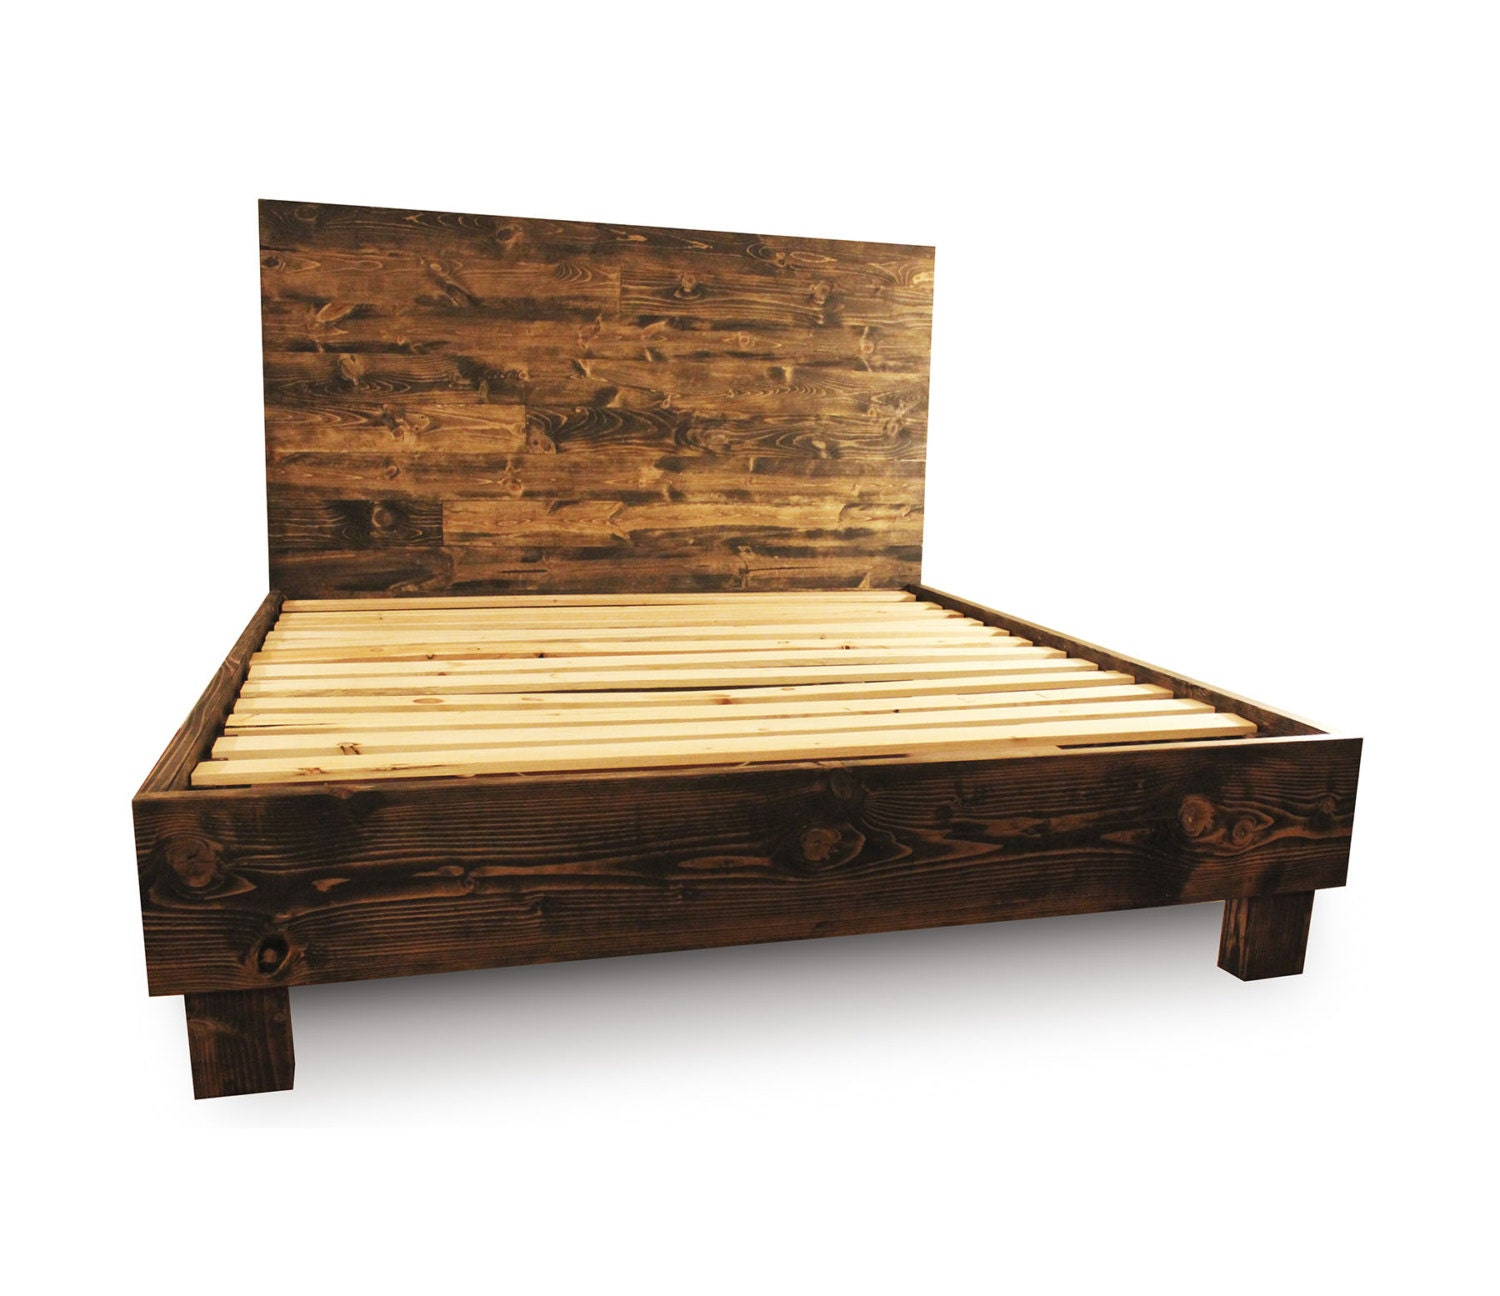 rustic solid wood platform bed frame headboard reclaimed. Black Bedroom Furniture Sets. Home Design Ideas